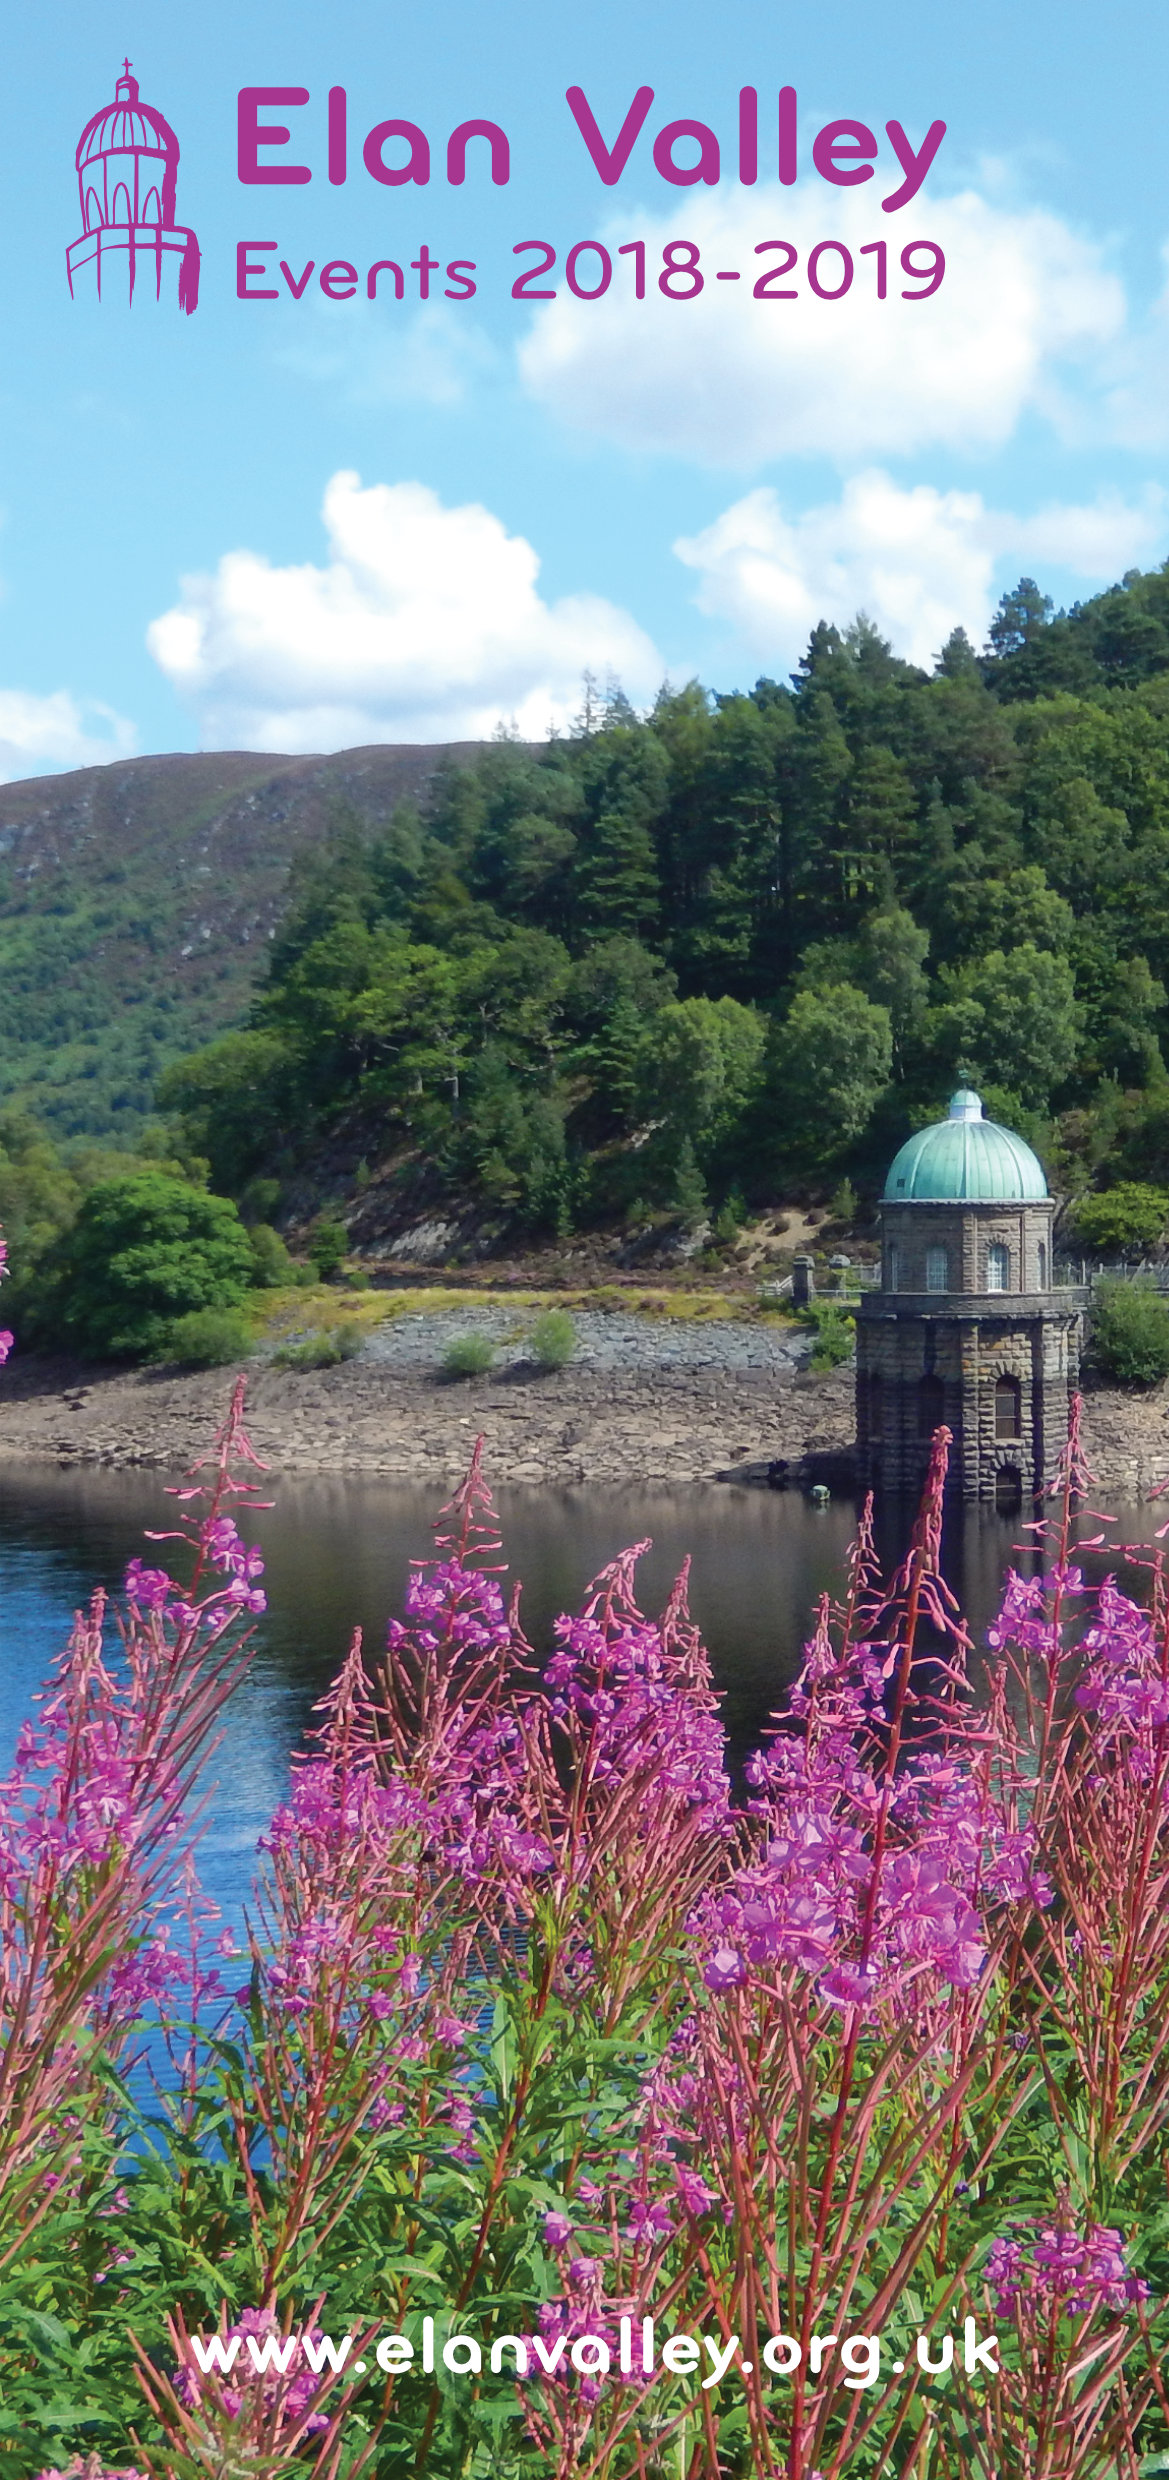 Elan Valley Events Guide 2018-2019. Click to read